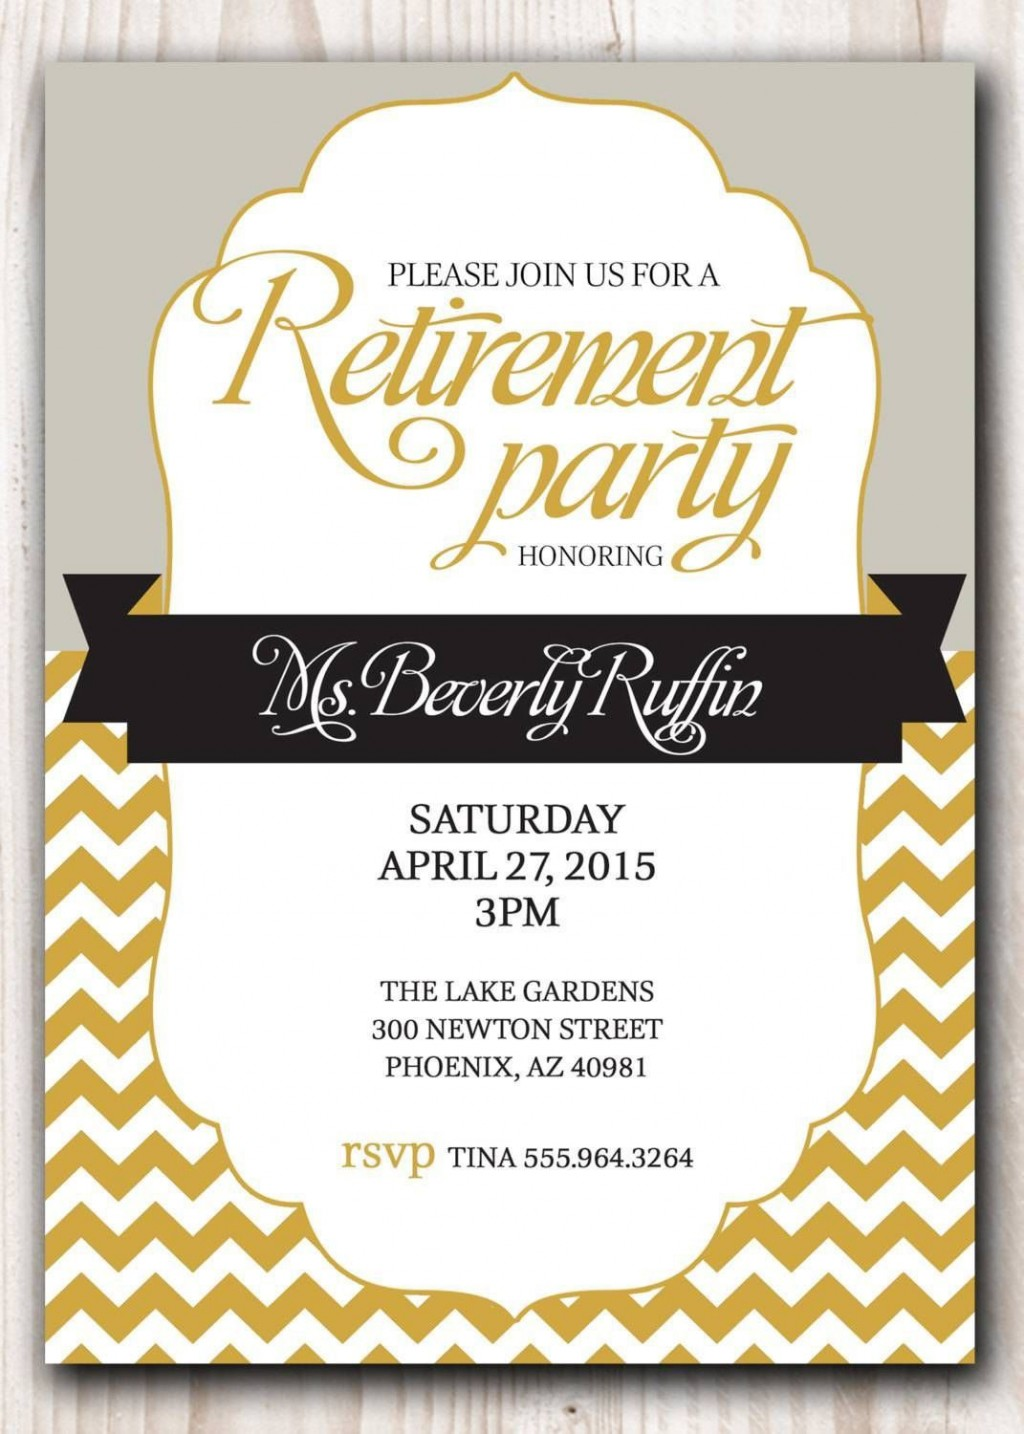 008 Incredible Retirement Party Invite Template Word Free Design Large